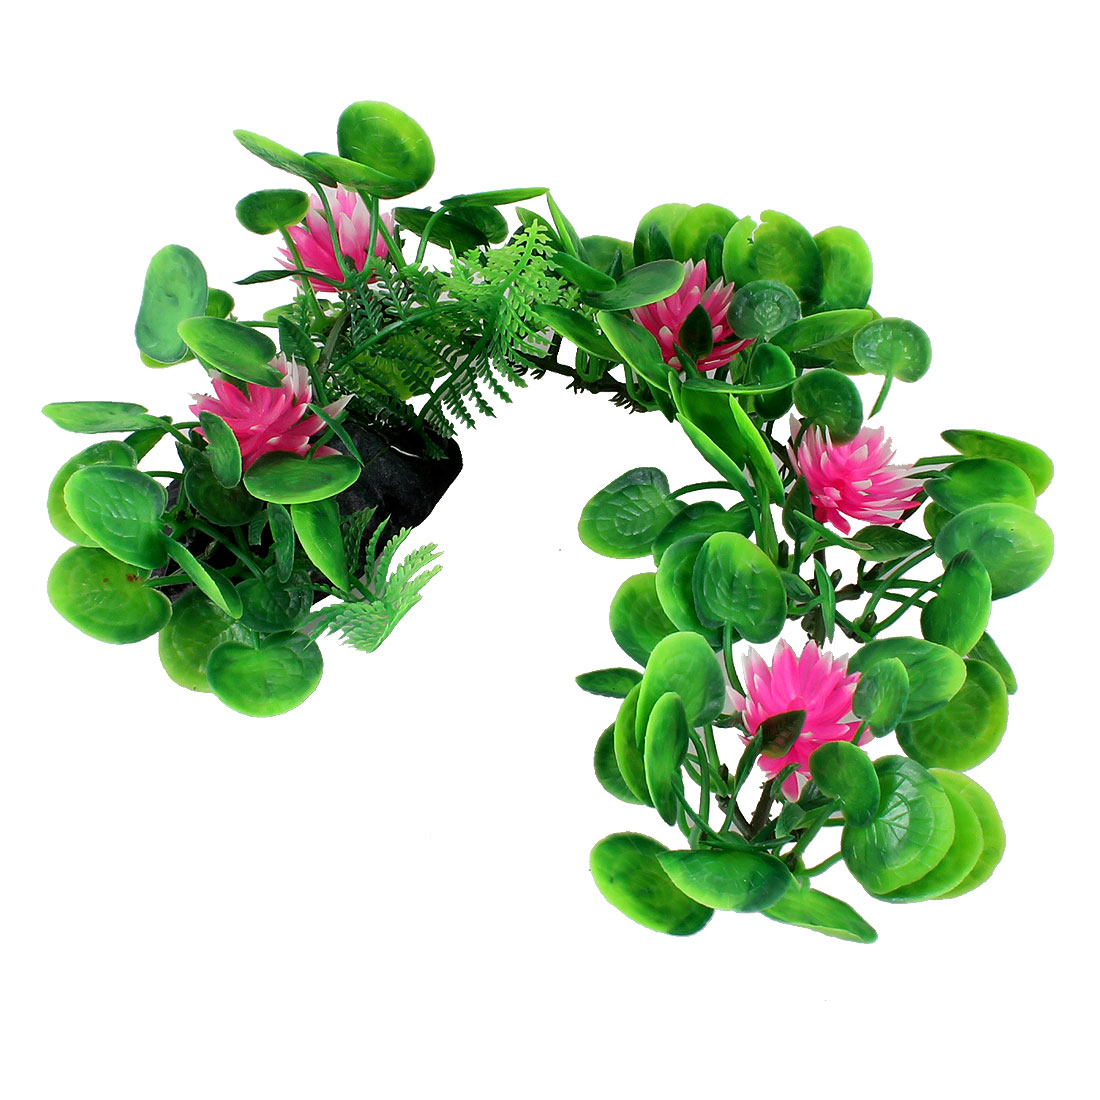 "5"" Pink Flower Plastic Underwater Grass Plants for Aquarium Fish Tank"